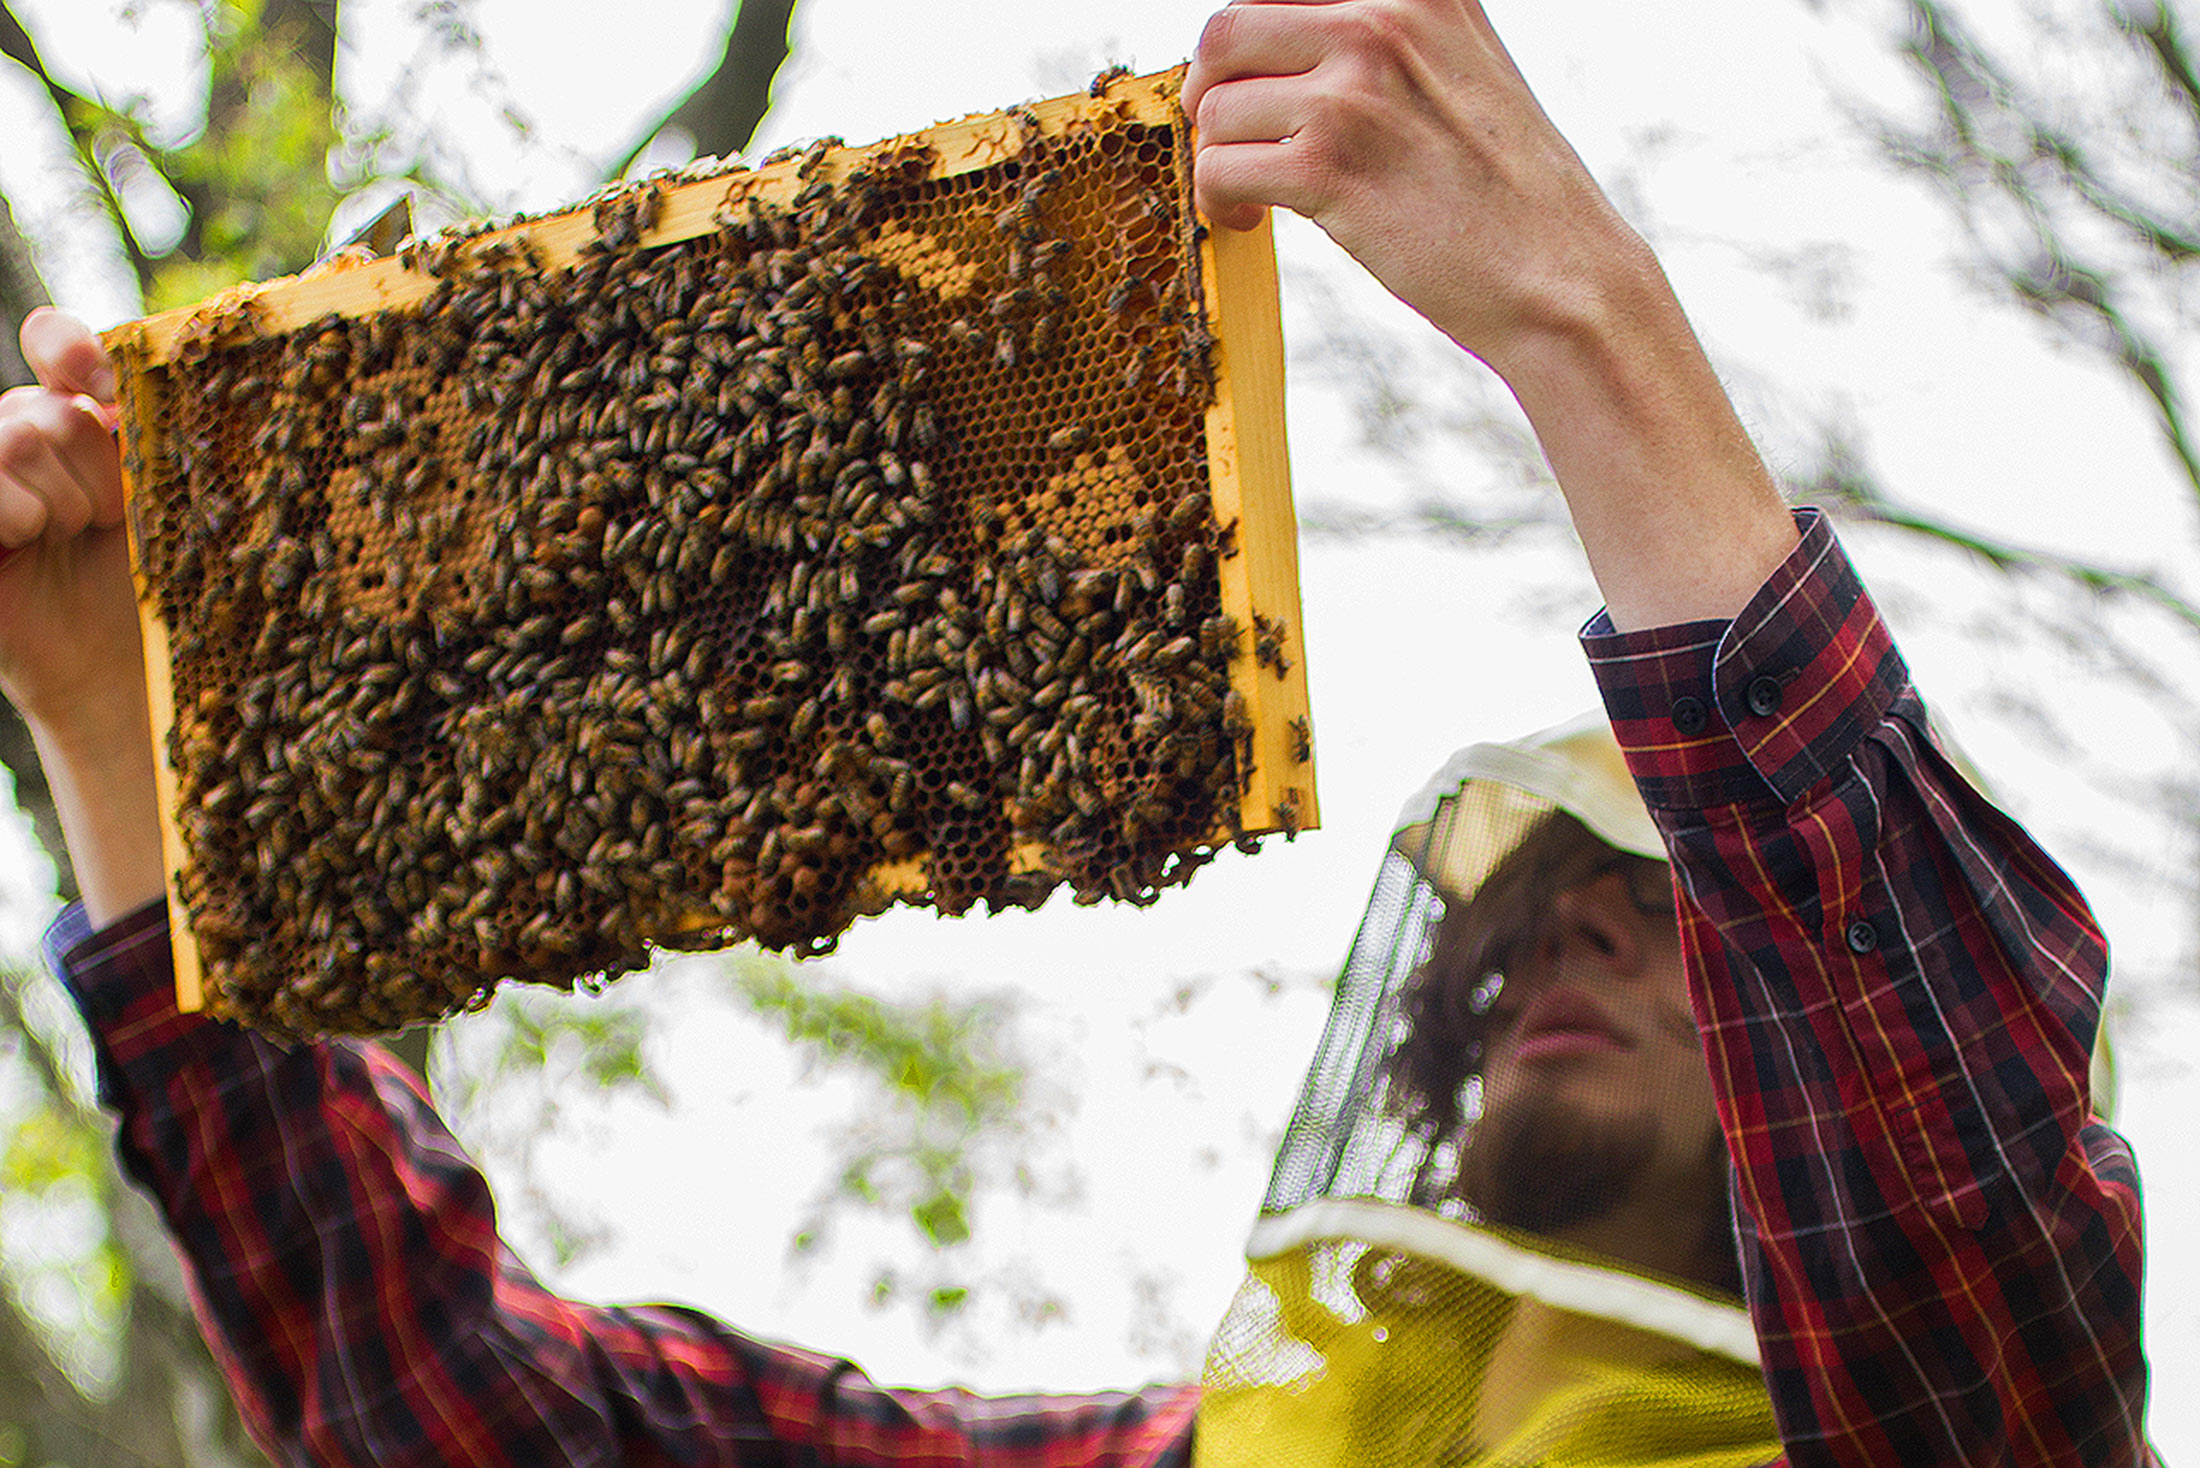 Insect Ecology and Conservation student beekeeping